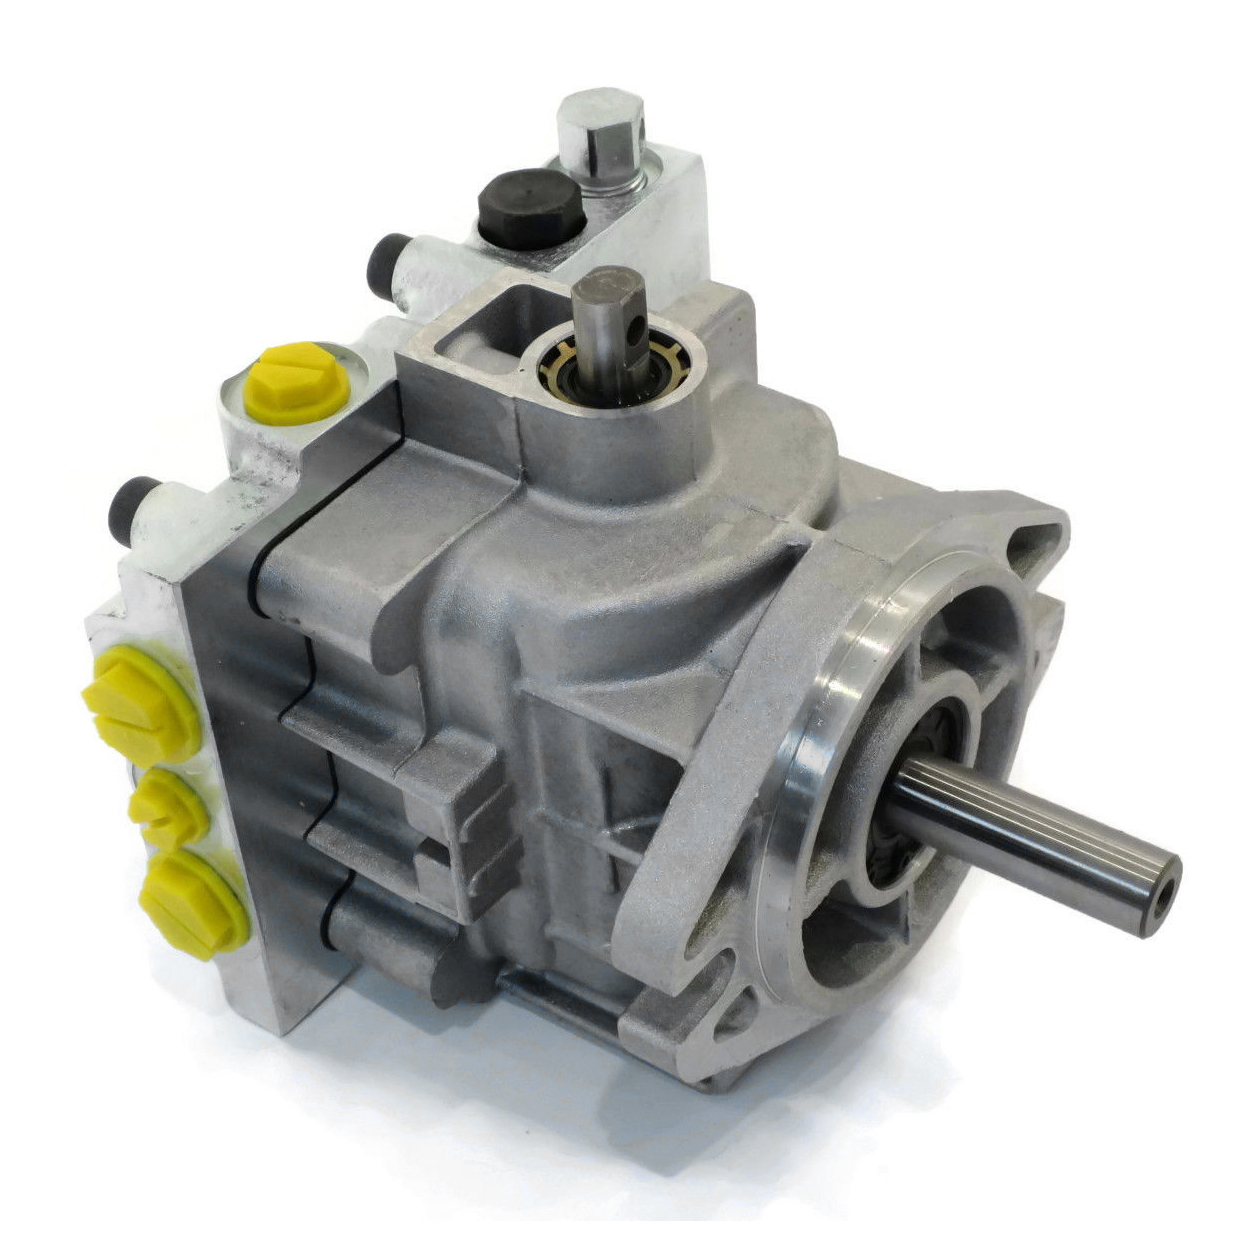 Hydro Gear Pump Pl Bgvq Dy1x Xxxx For Scag Lawn Mowers